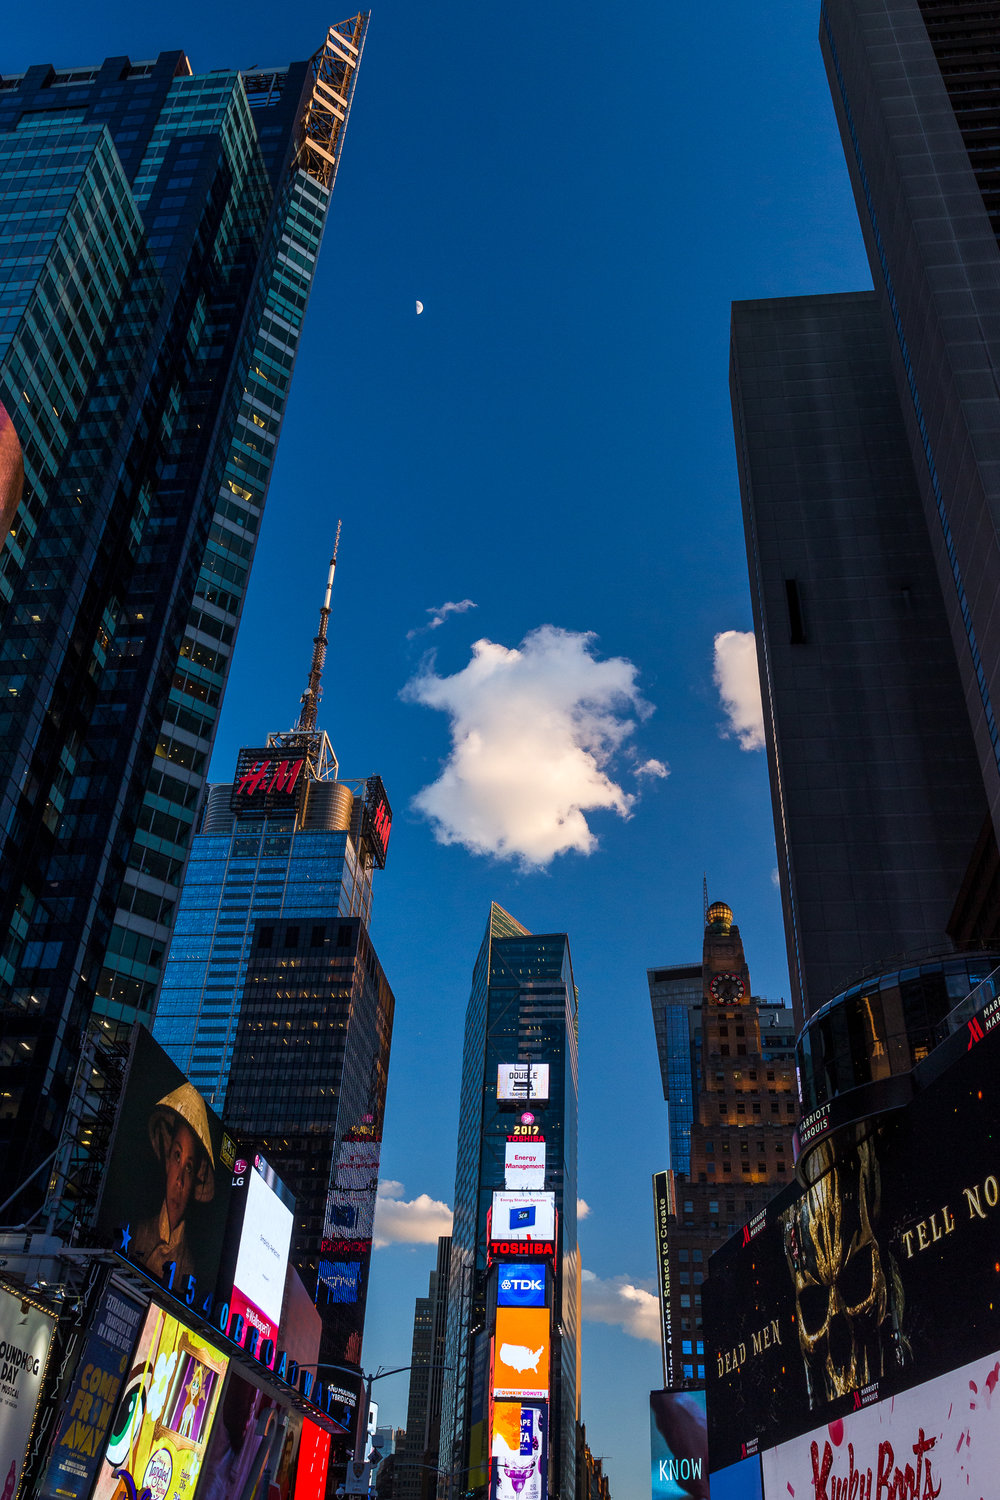 Times Square with a little Germany shaped cloud hanging over it. Not suspicious at all, Germany.